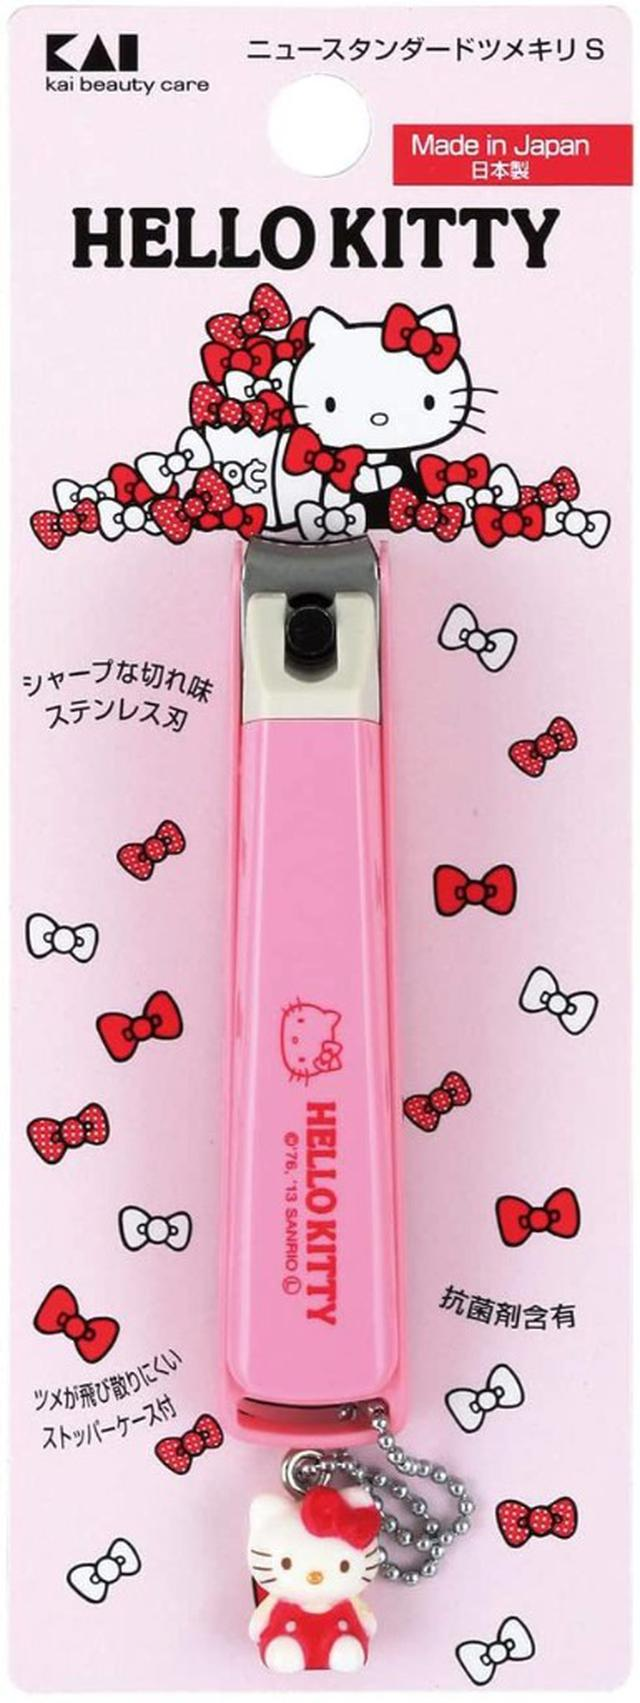 日本限定Hello Kitty貝印KT指甲剪